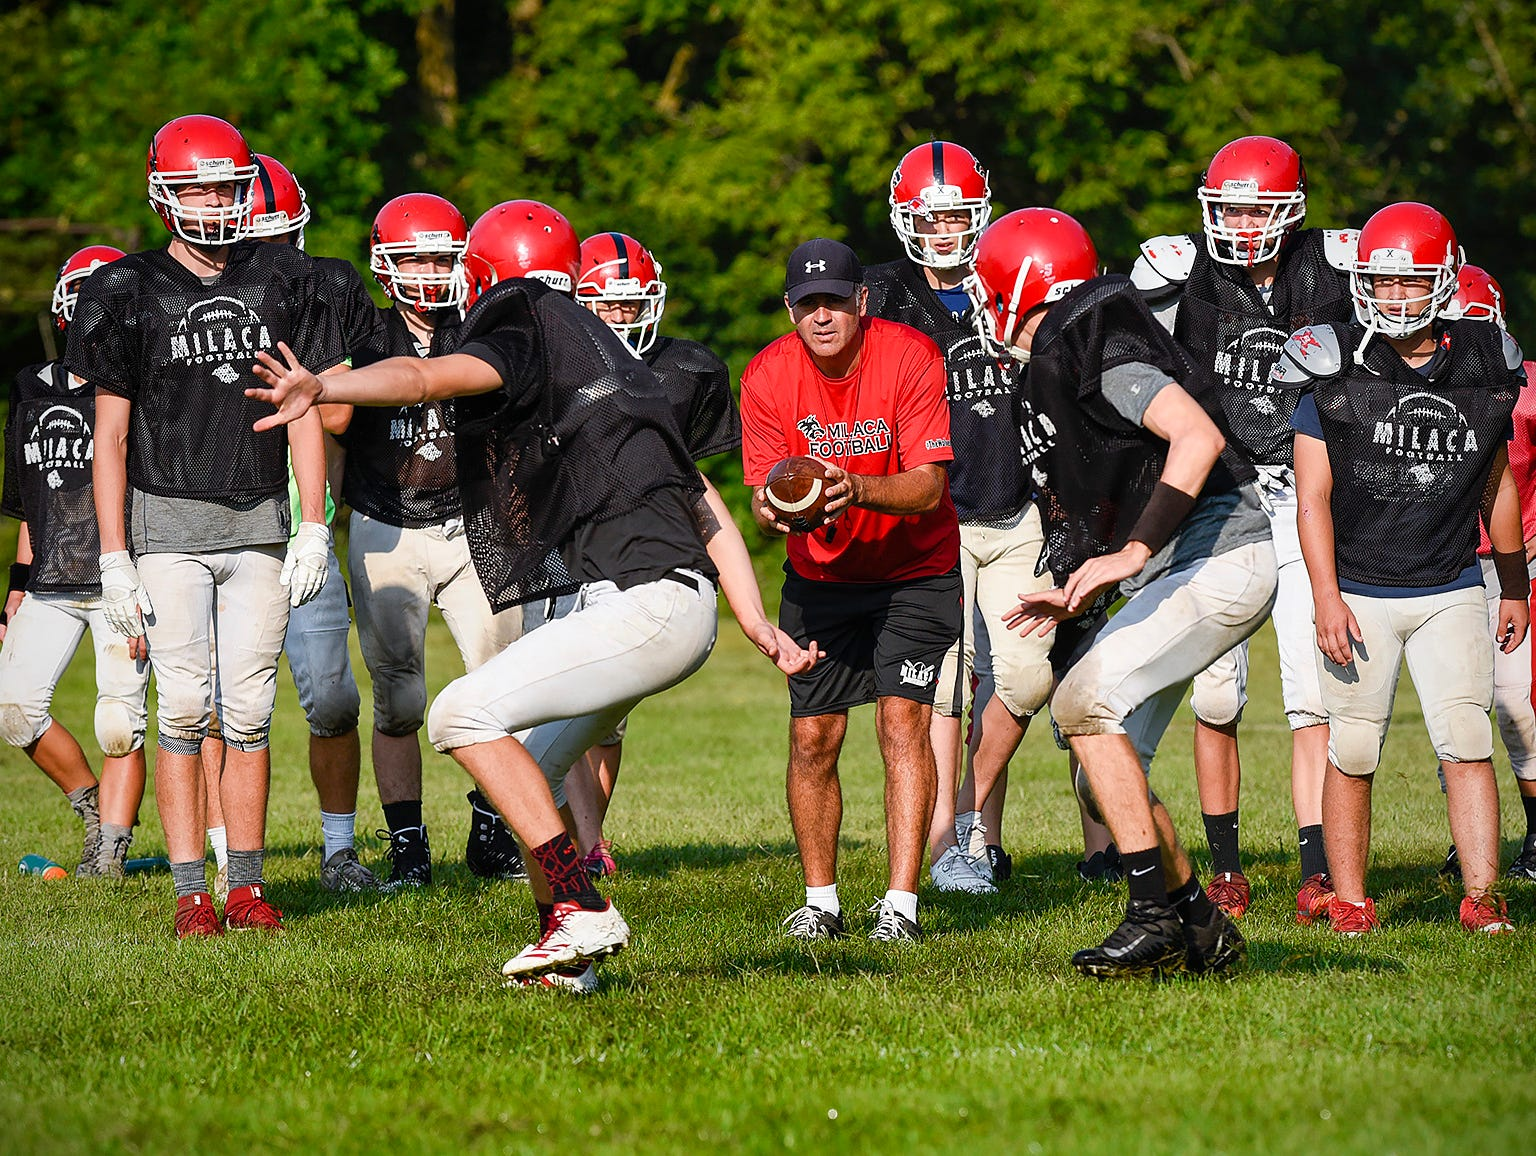 Milaca players go through a footwork drill during practice Thursday, Aug. 16, in Milaca.